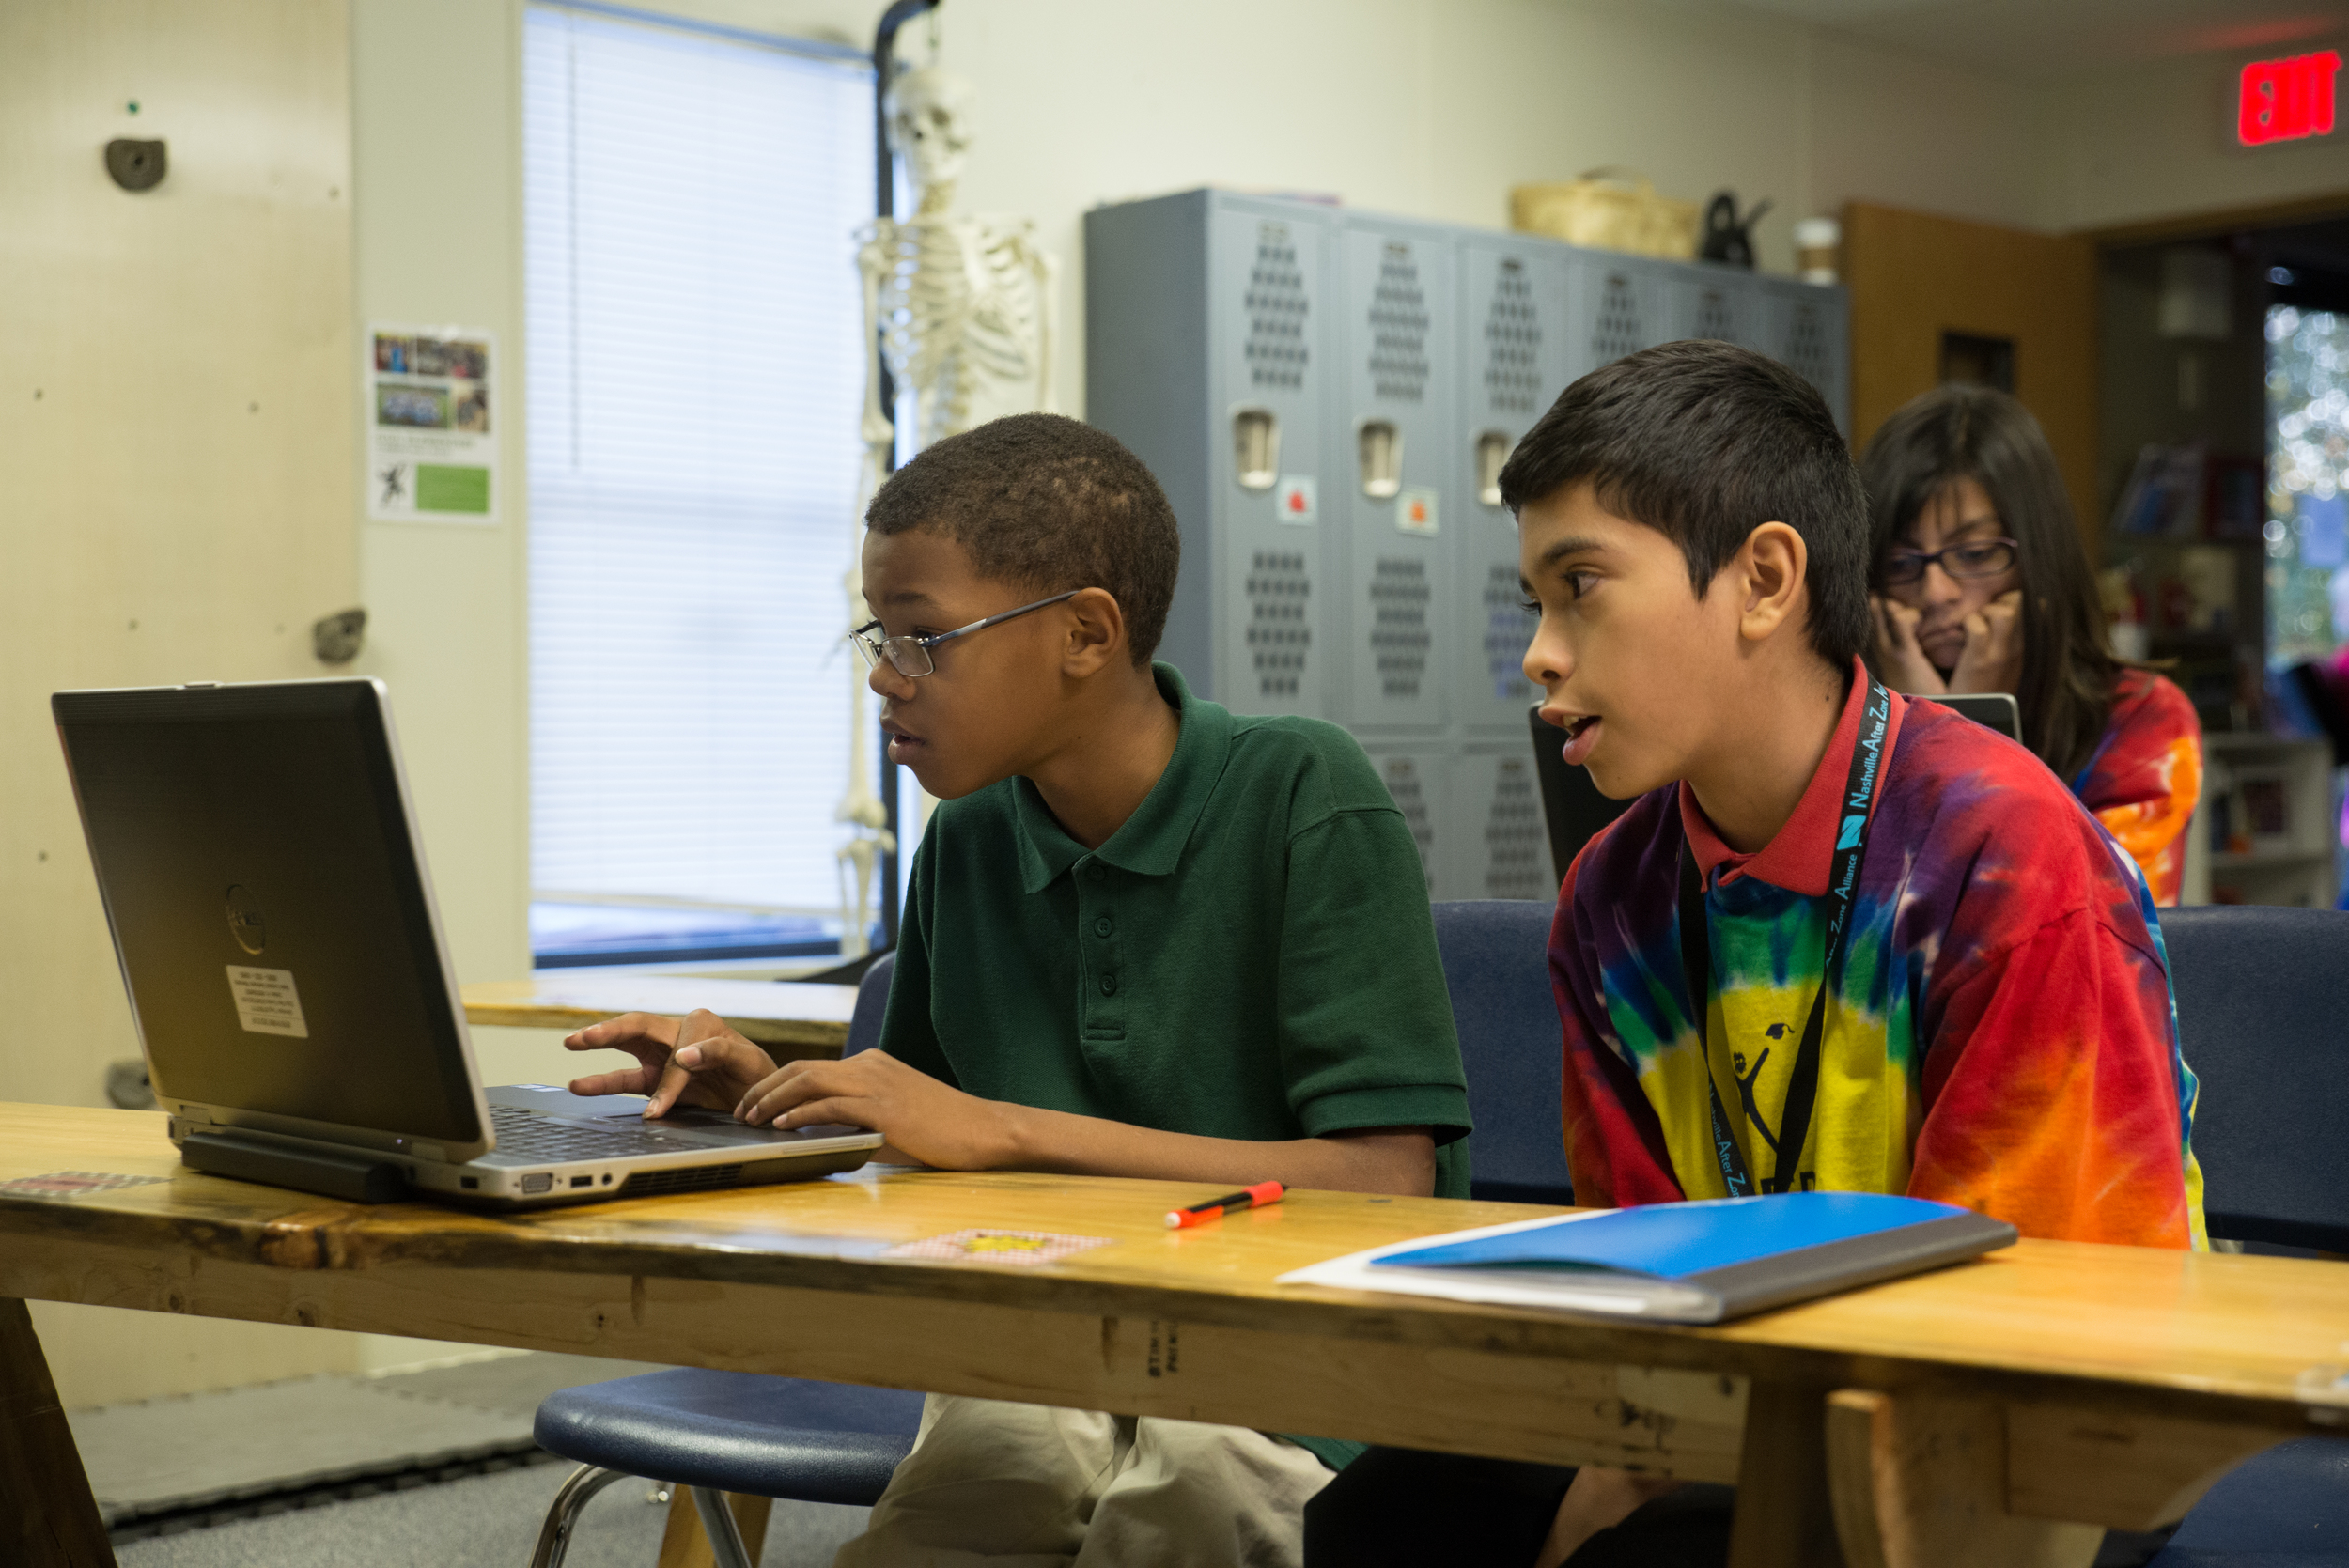 Sean and Francisco, deemed CASE's resident computer experts, troubleshoot problems during a computer programming activity. Technology has increasingly become part of school curriculums, as schools recognize the importance of computer literacy in the 21st century.